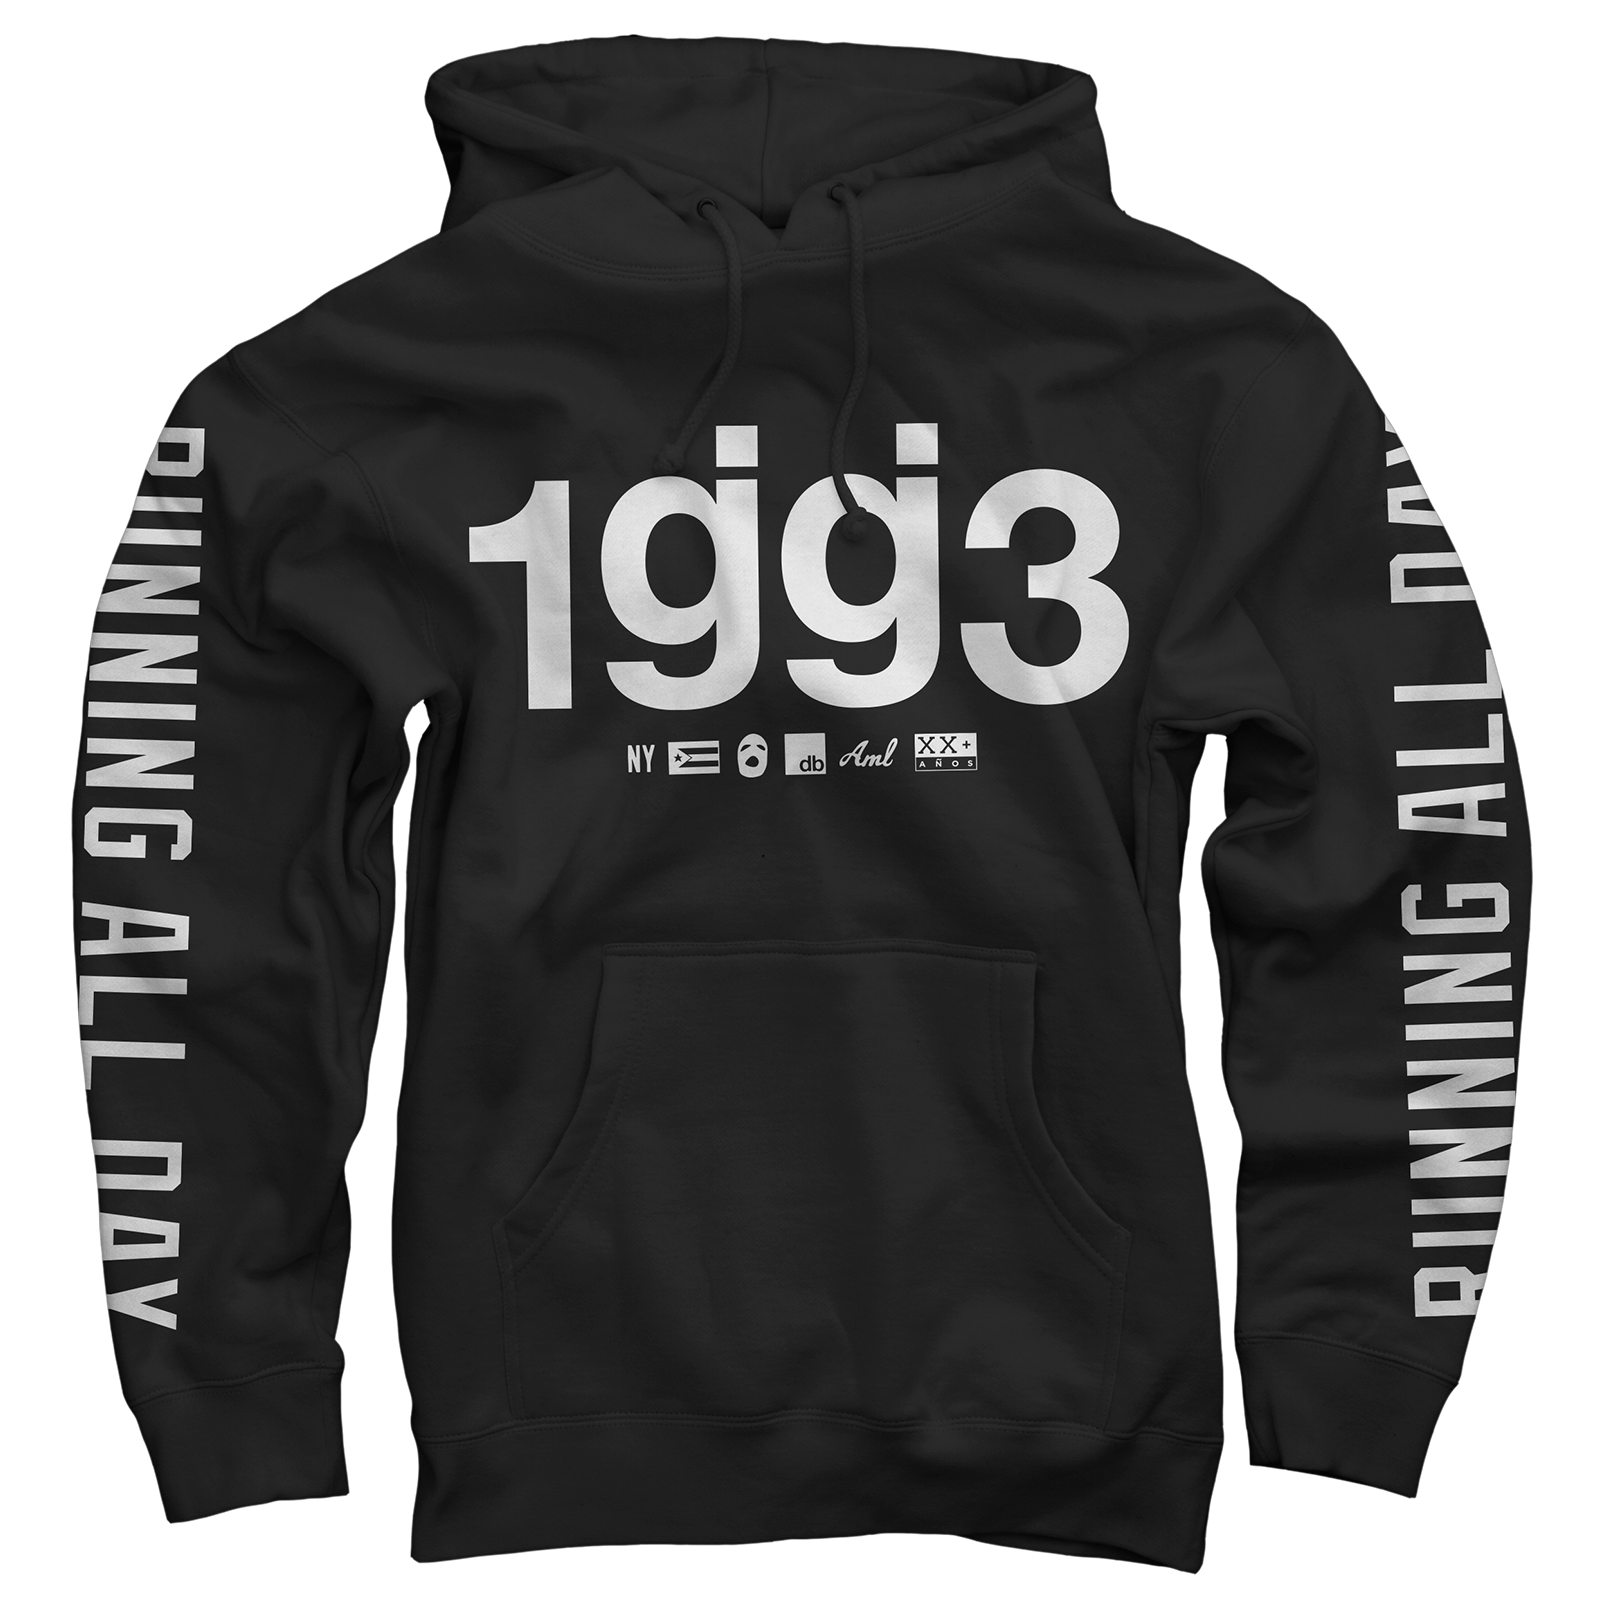 1gg3 running all day pullover sweatshirt